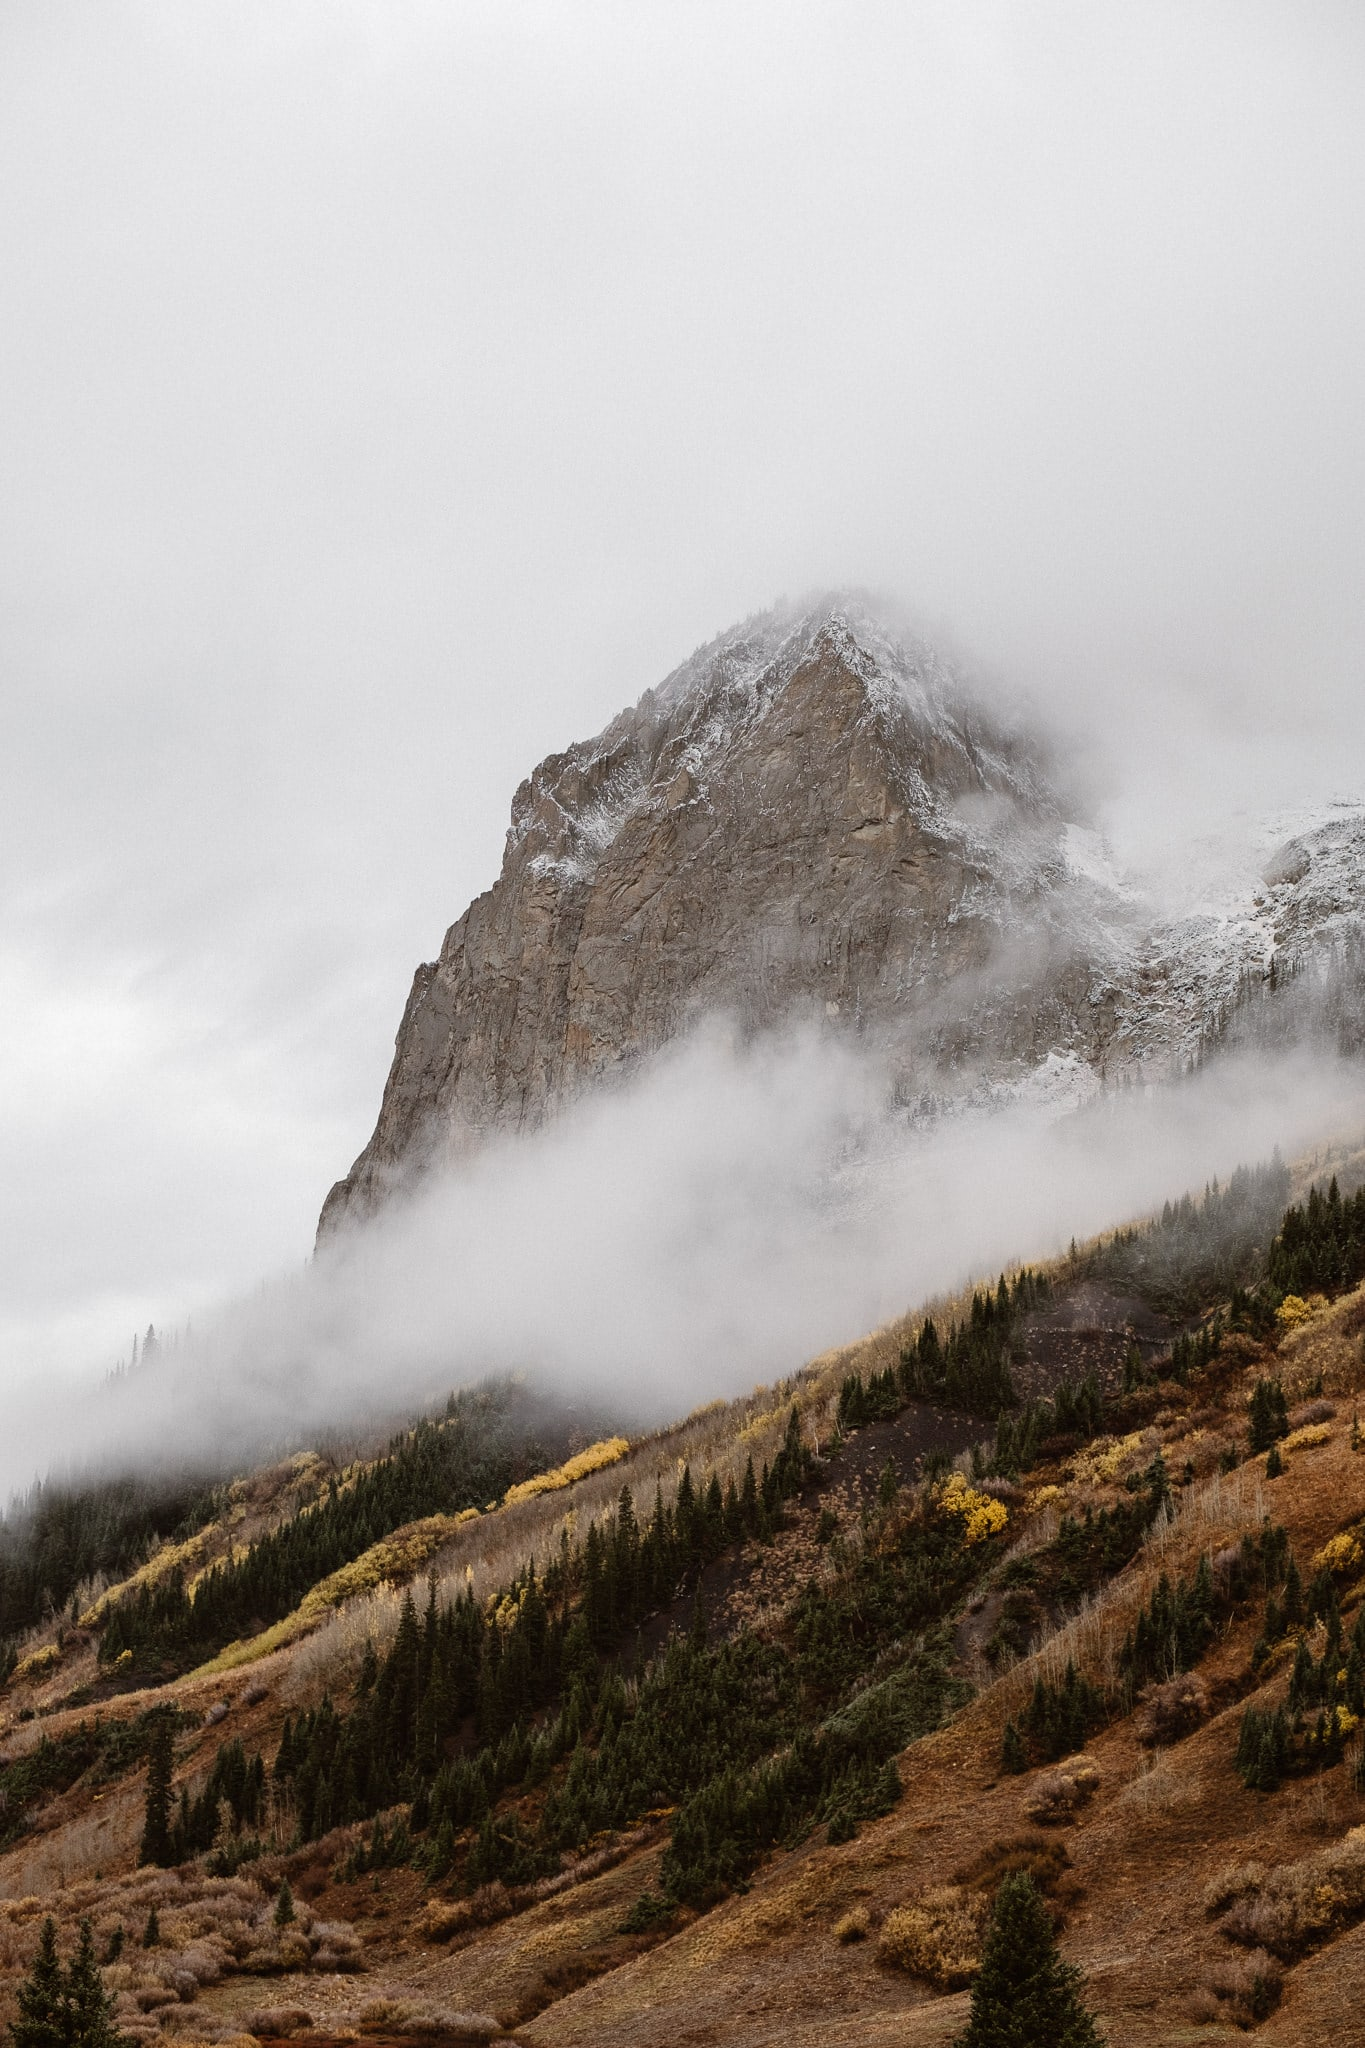 Crested Butte mountain landscape in winter, moody winter landscape photography